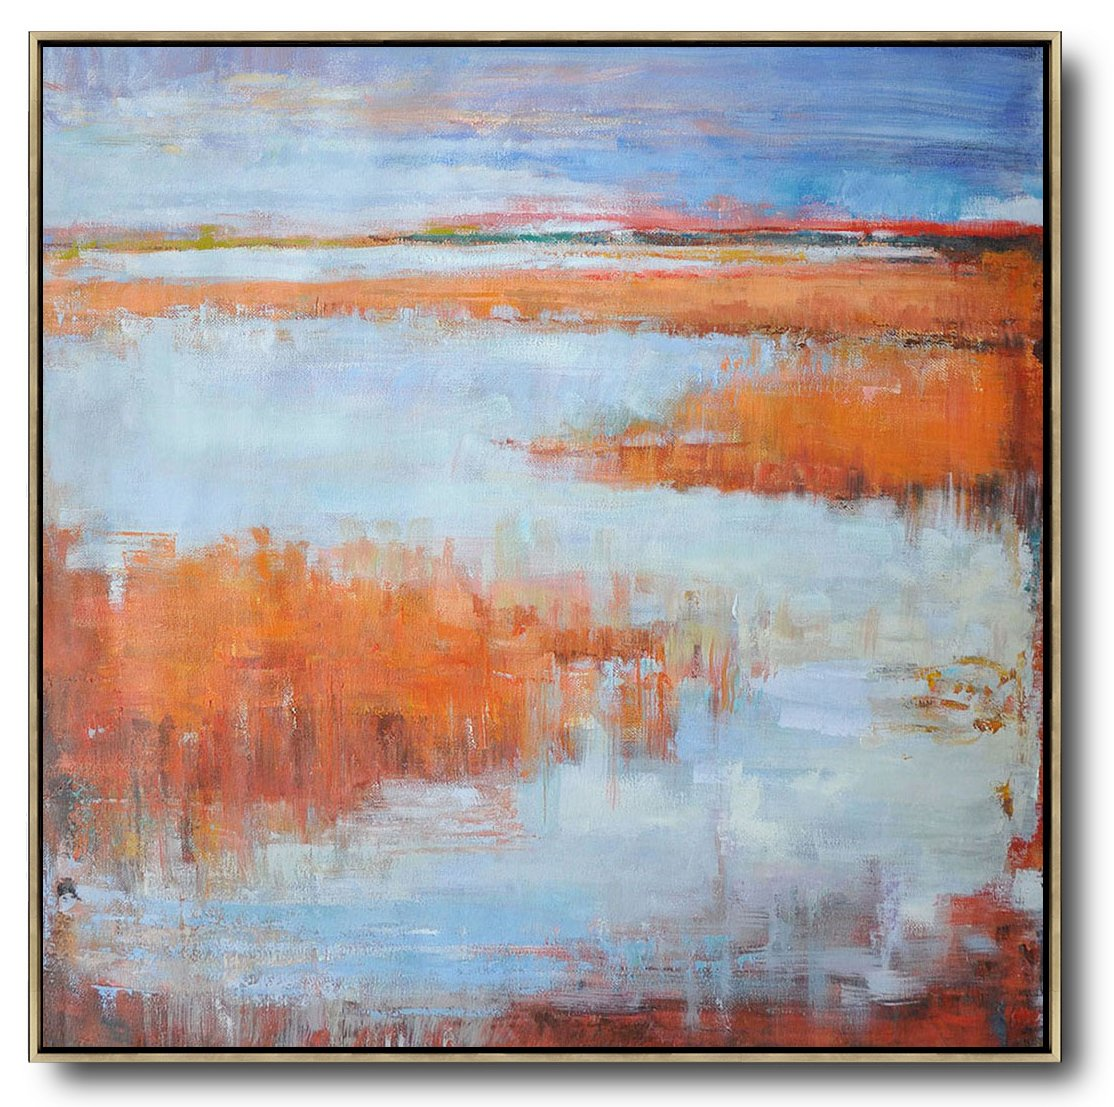 Handmade Large Contemporary Art,Oversized Abstract Landscape Oil Painting,Large Living Room Decor,Orange,Blue,Gray.etc